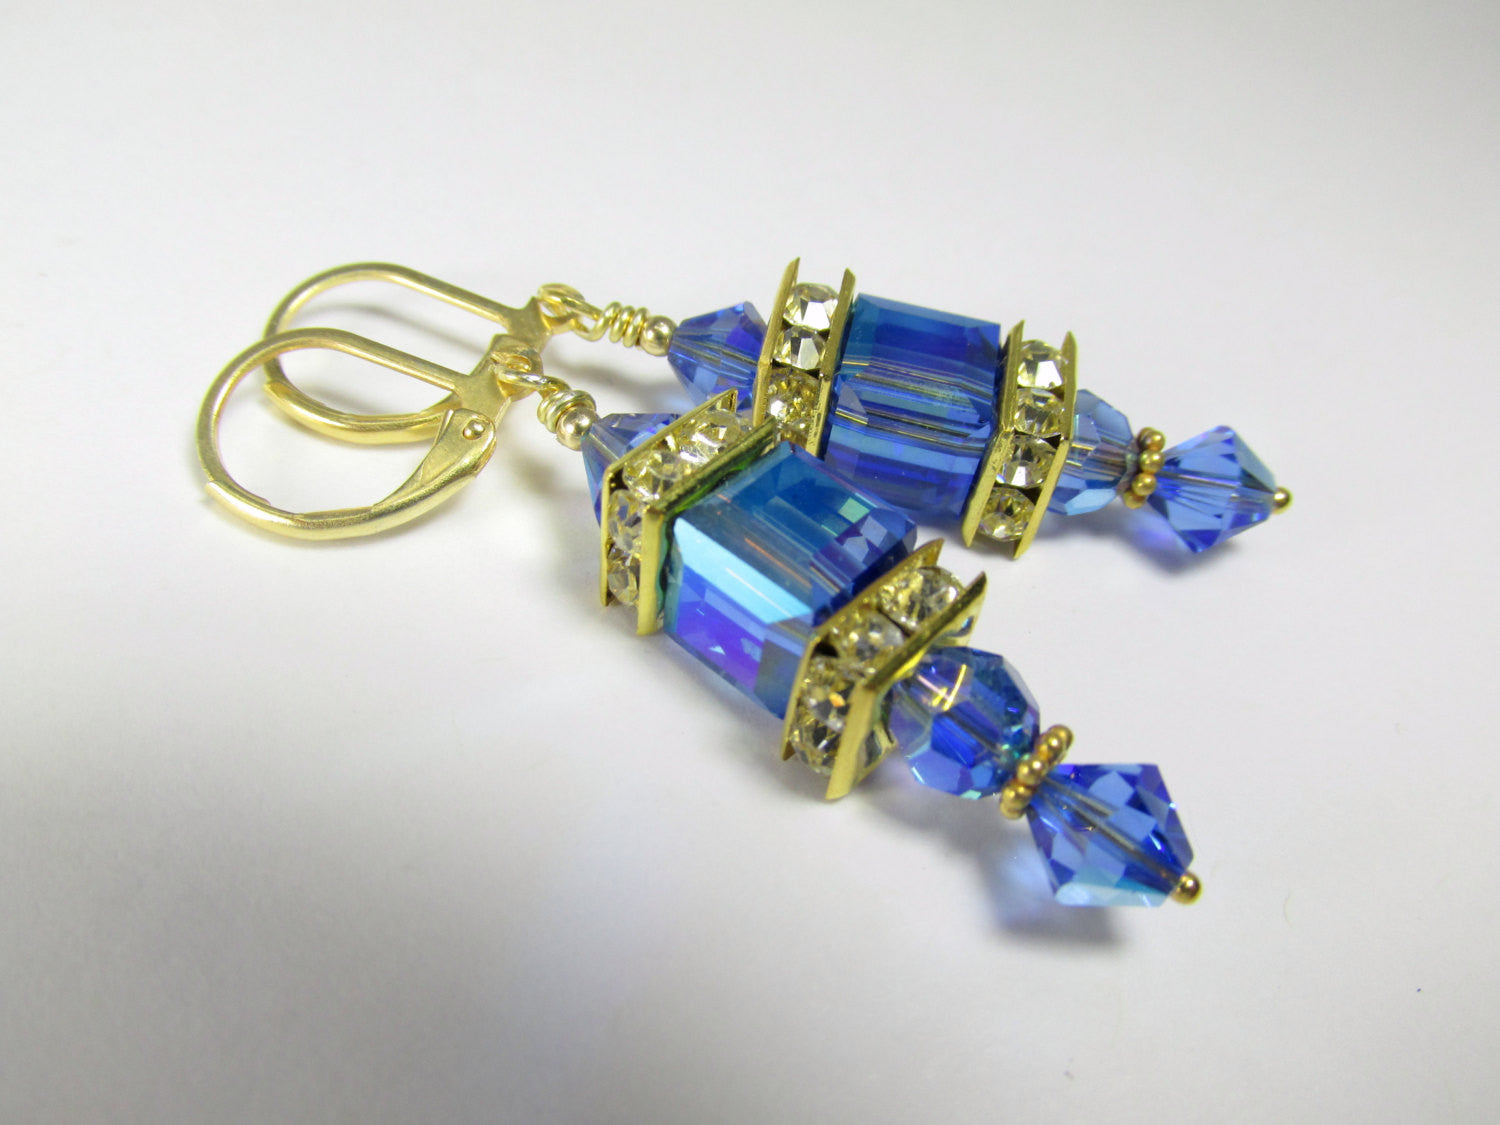 Royal Blue and Gold Earrings in 8mm Swarovski Sapphire AB Cubes on 14k Gold Fill earring leverbacks - Odyssey Creations